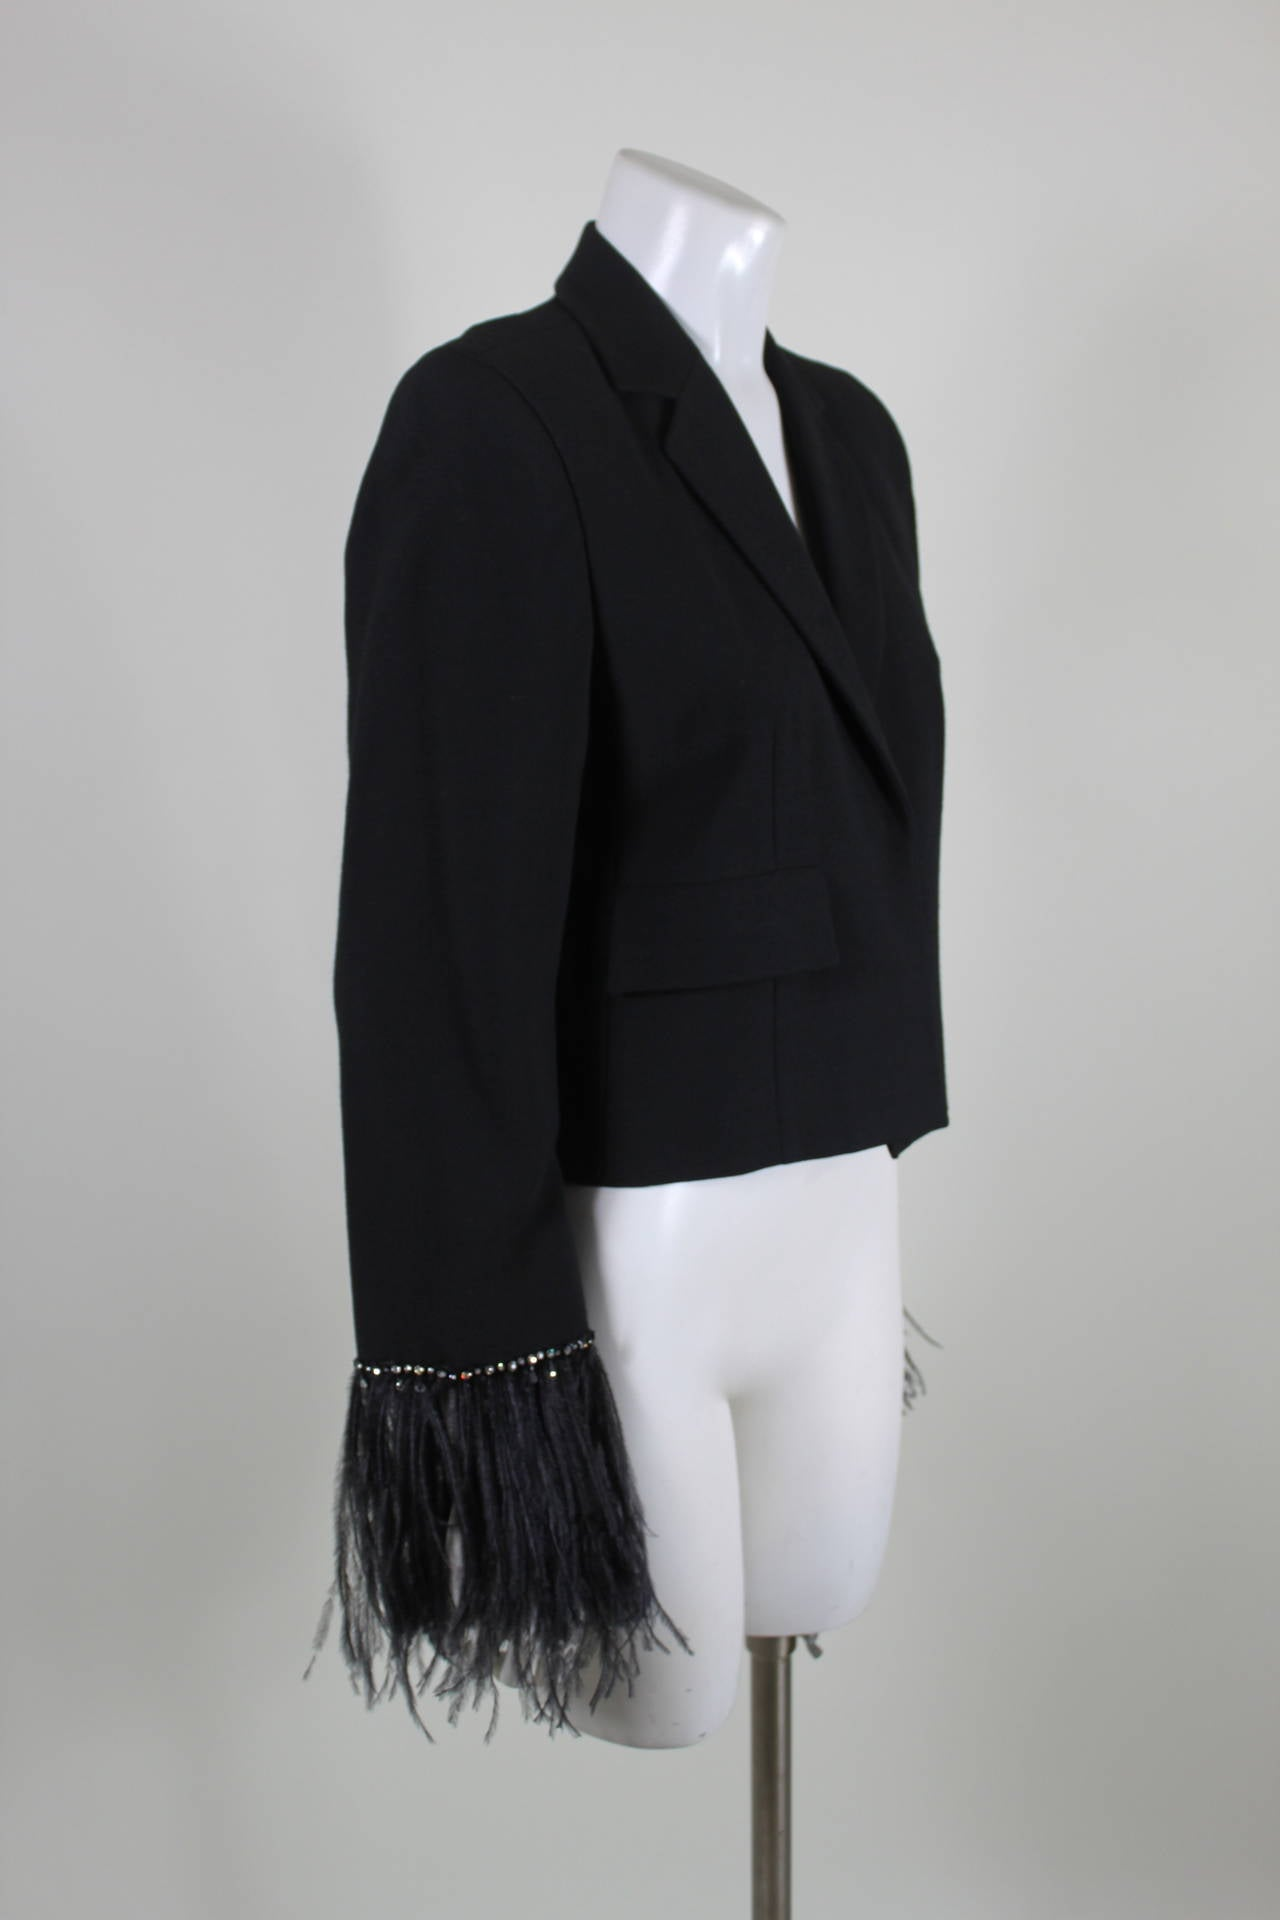 Pierre Cardin 1980s Black Jacket w/ Feather and Rhinestone Sleeves 2